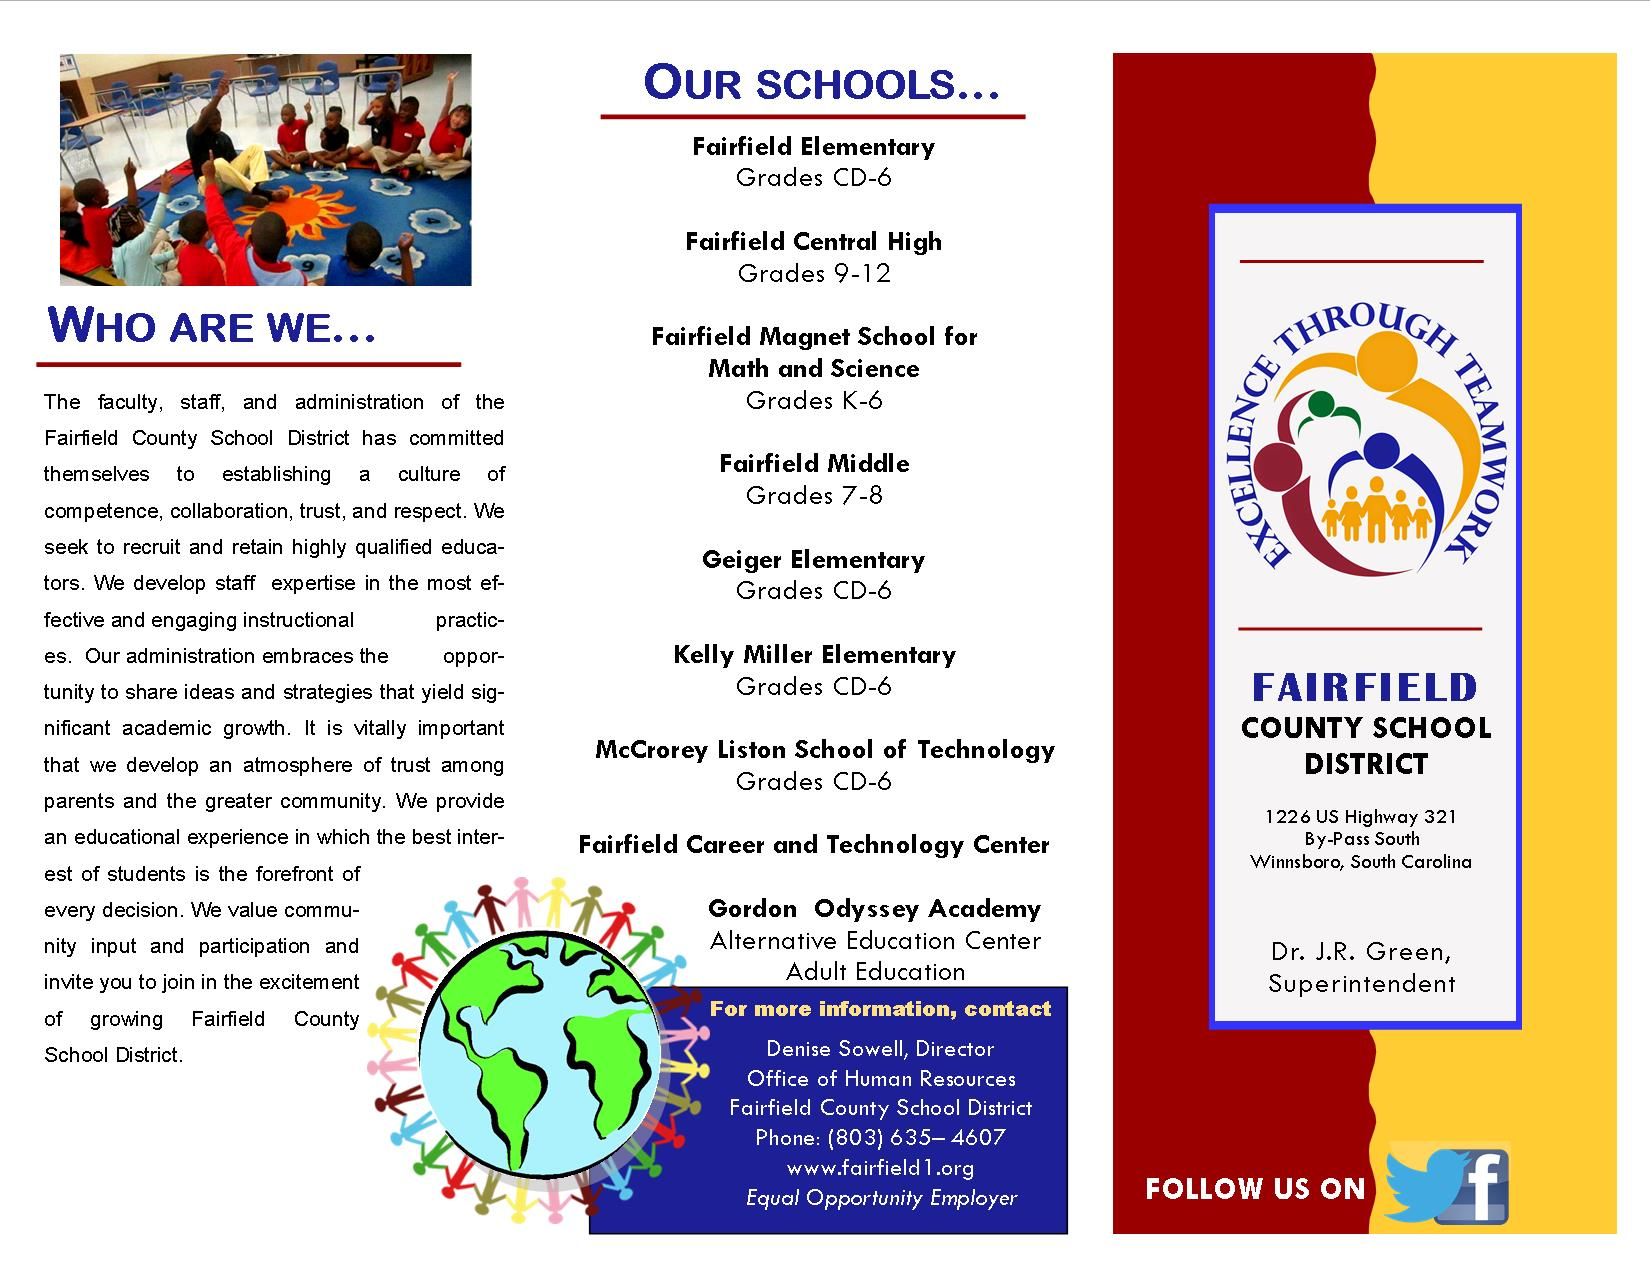 Fairfield County School District serves over 2800 students in grades Child Development to twelfth grade. Students are served by 9 schools in Fairfield County including 5 elementary schools, 1 middle school, 1 high school, 1 alternative school, and 1 career and technology center. As a part of the Healthy, Hunger-Free Kids Act of 2010, the school district participates in the 2014-2015 Community Eligibility Provision which allows Fairfield County Schools to provide free breakfast and lunch to all students. All schools in Fairfield County qualify for Title I funding.